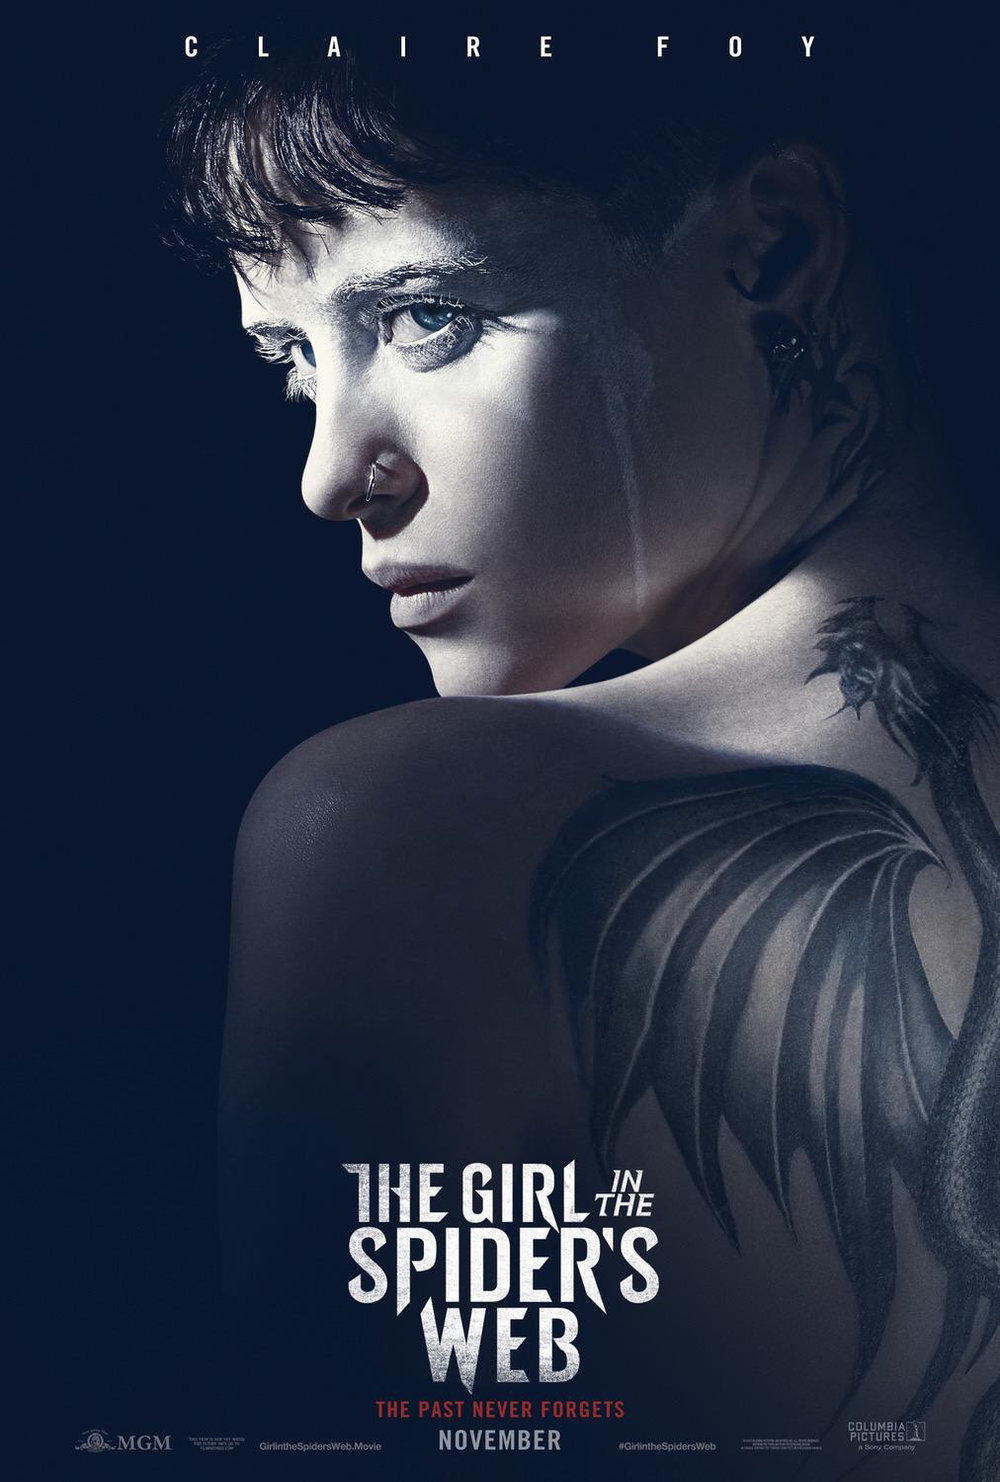 The Girl in the Spider's Web movie poster.jpg